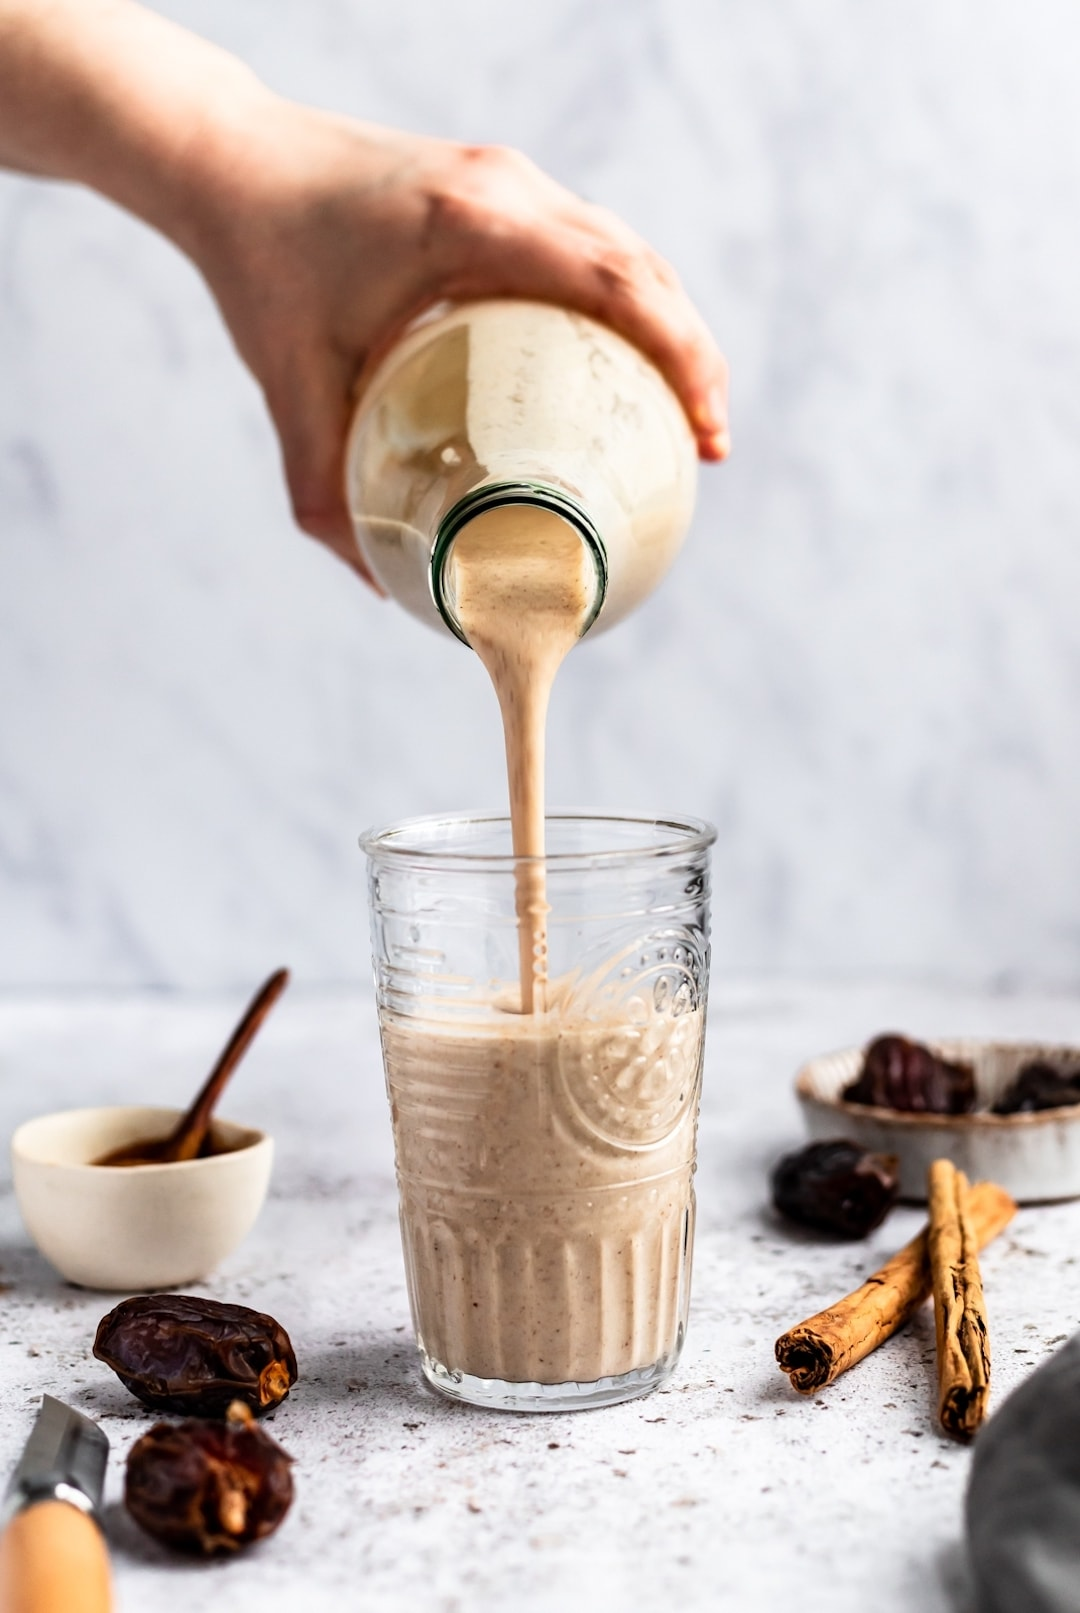 Pouring snickerdoodle smoothie into a glass with dates and cinnamon sticks on the side